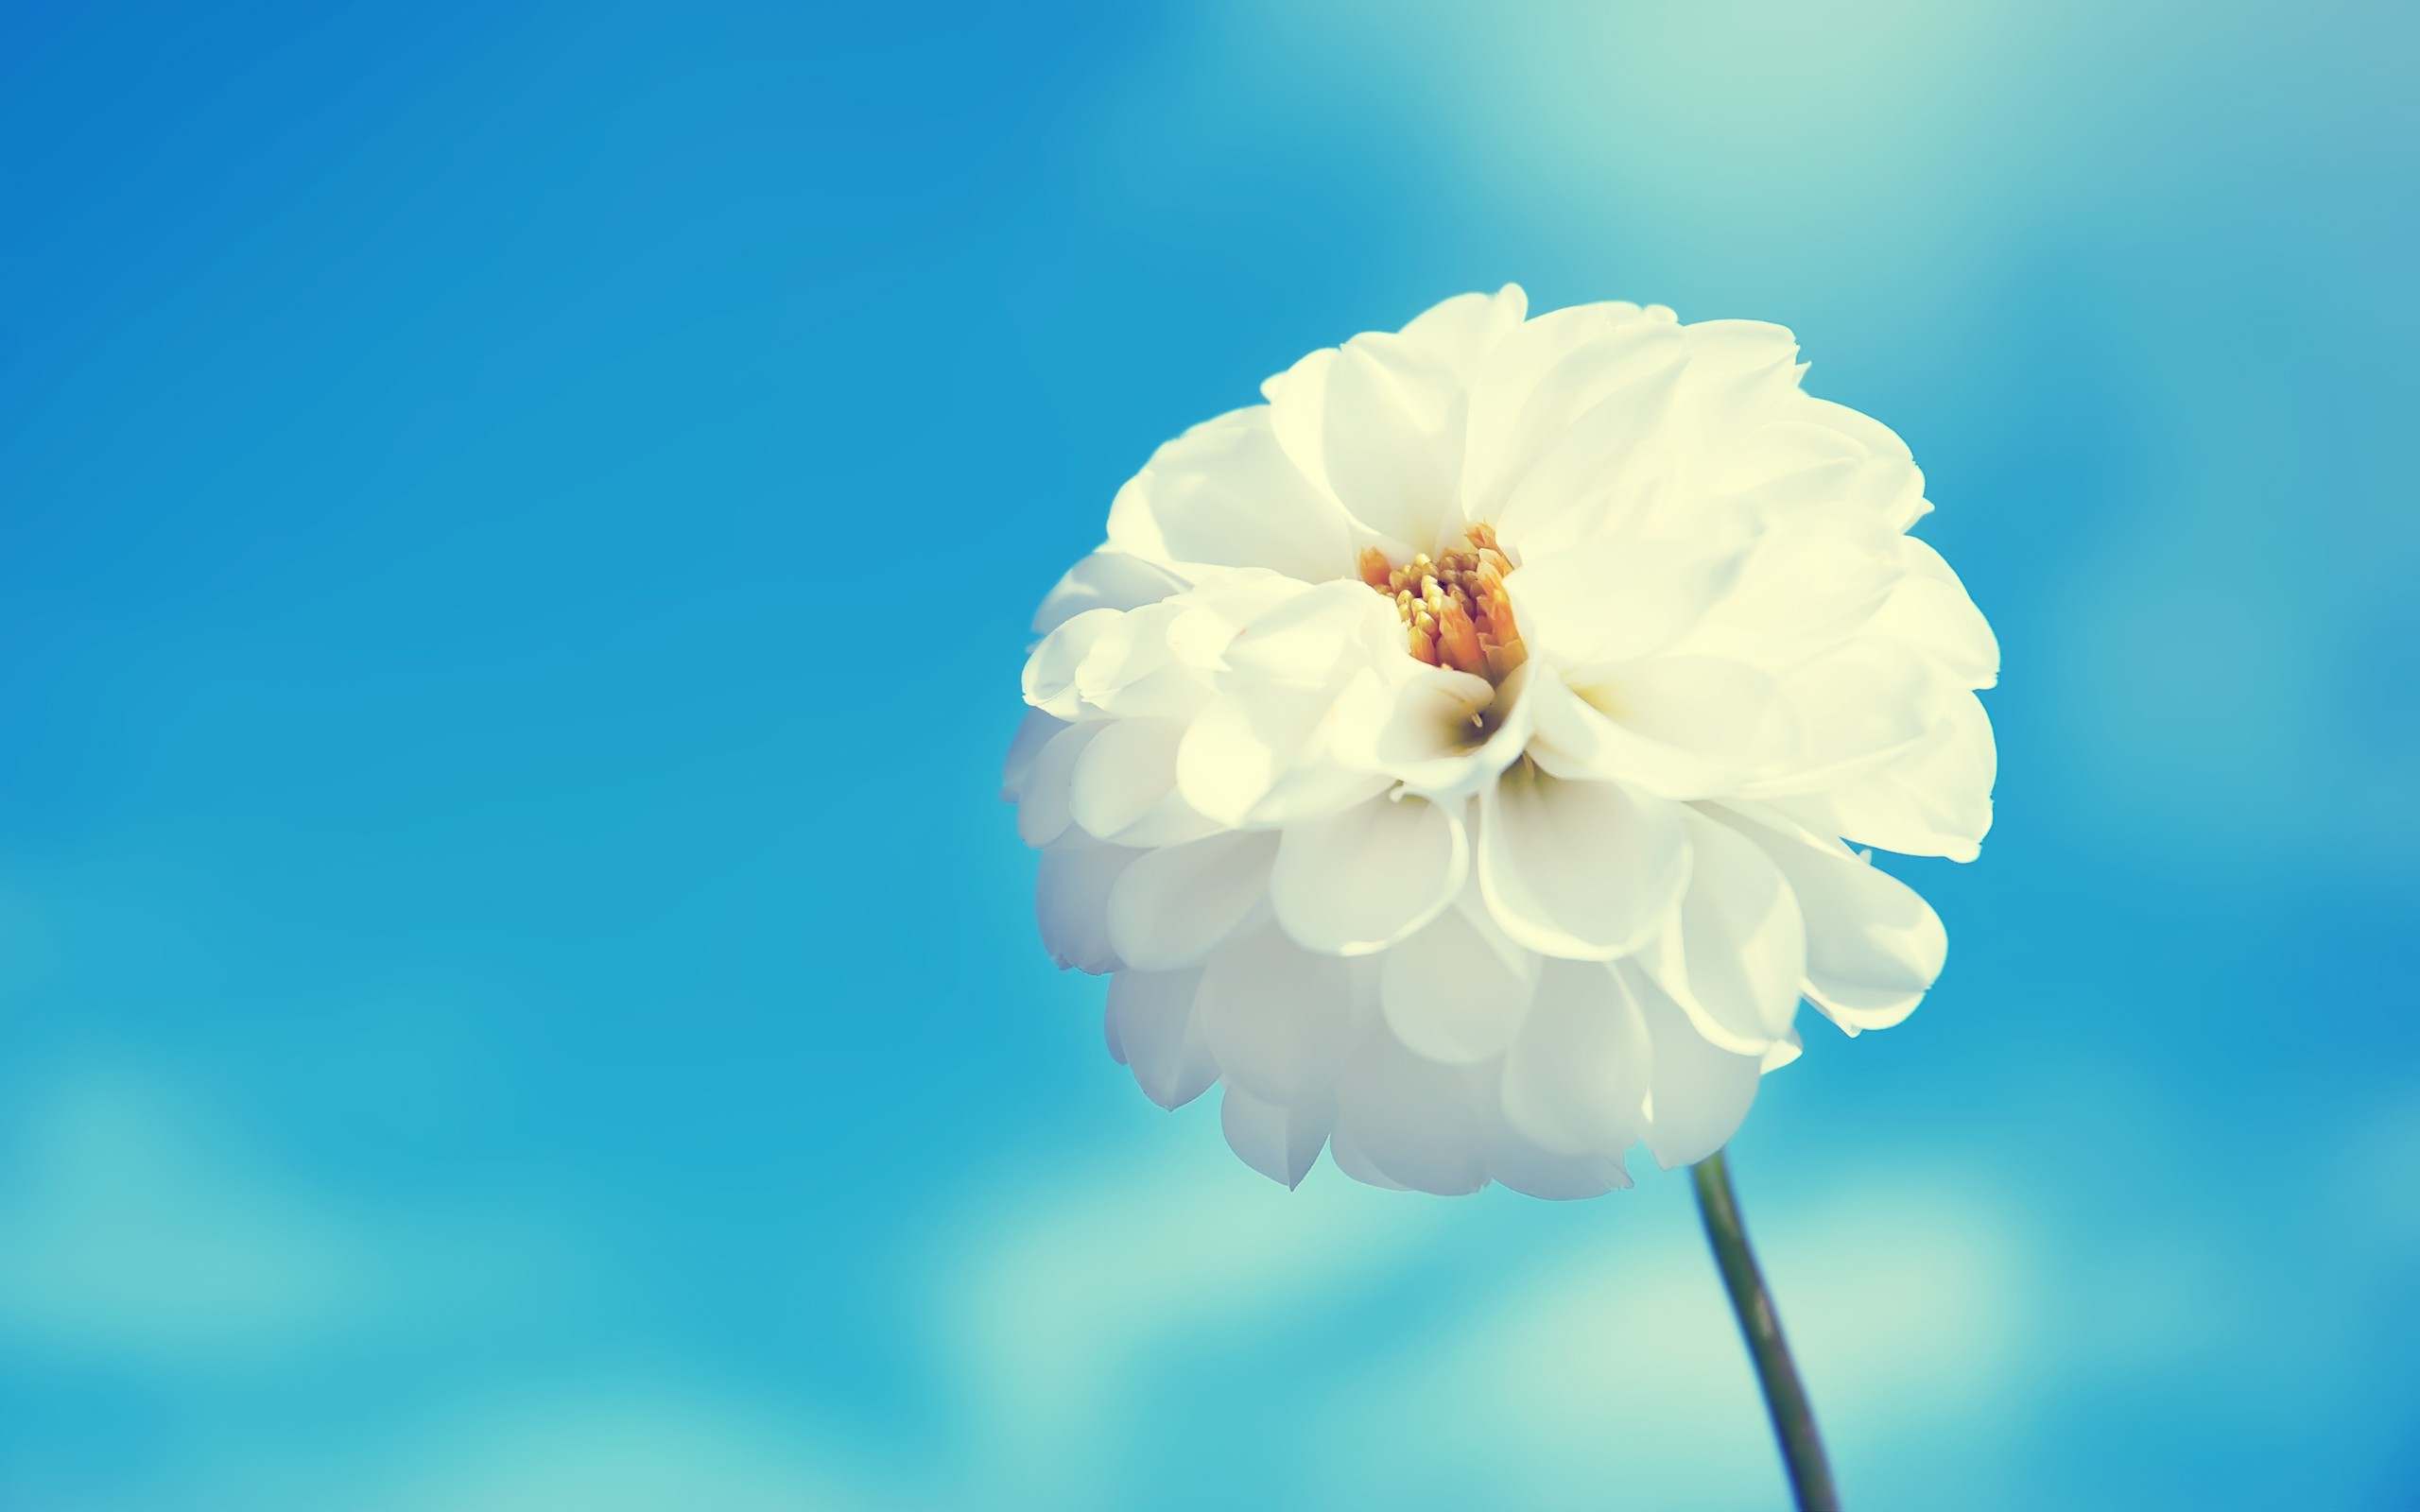 White Flower And Blue Sky Wallpaper 2560x1600 2893 Wallpaperup